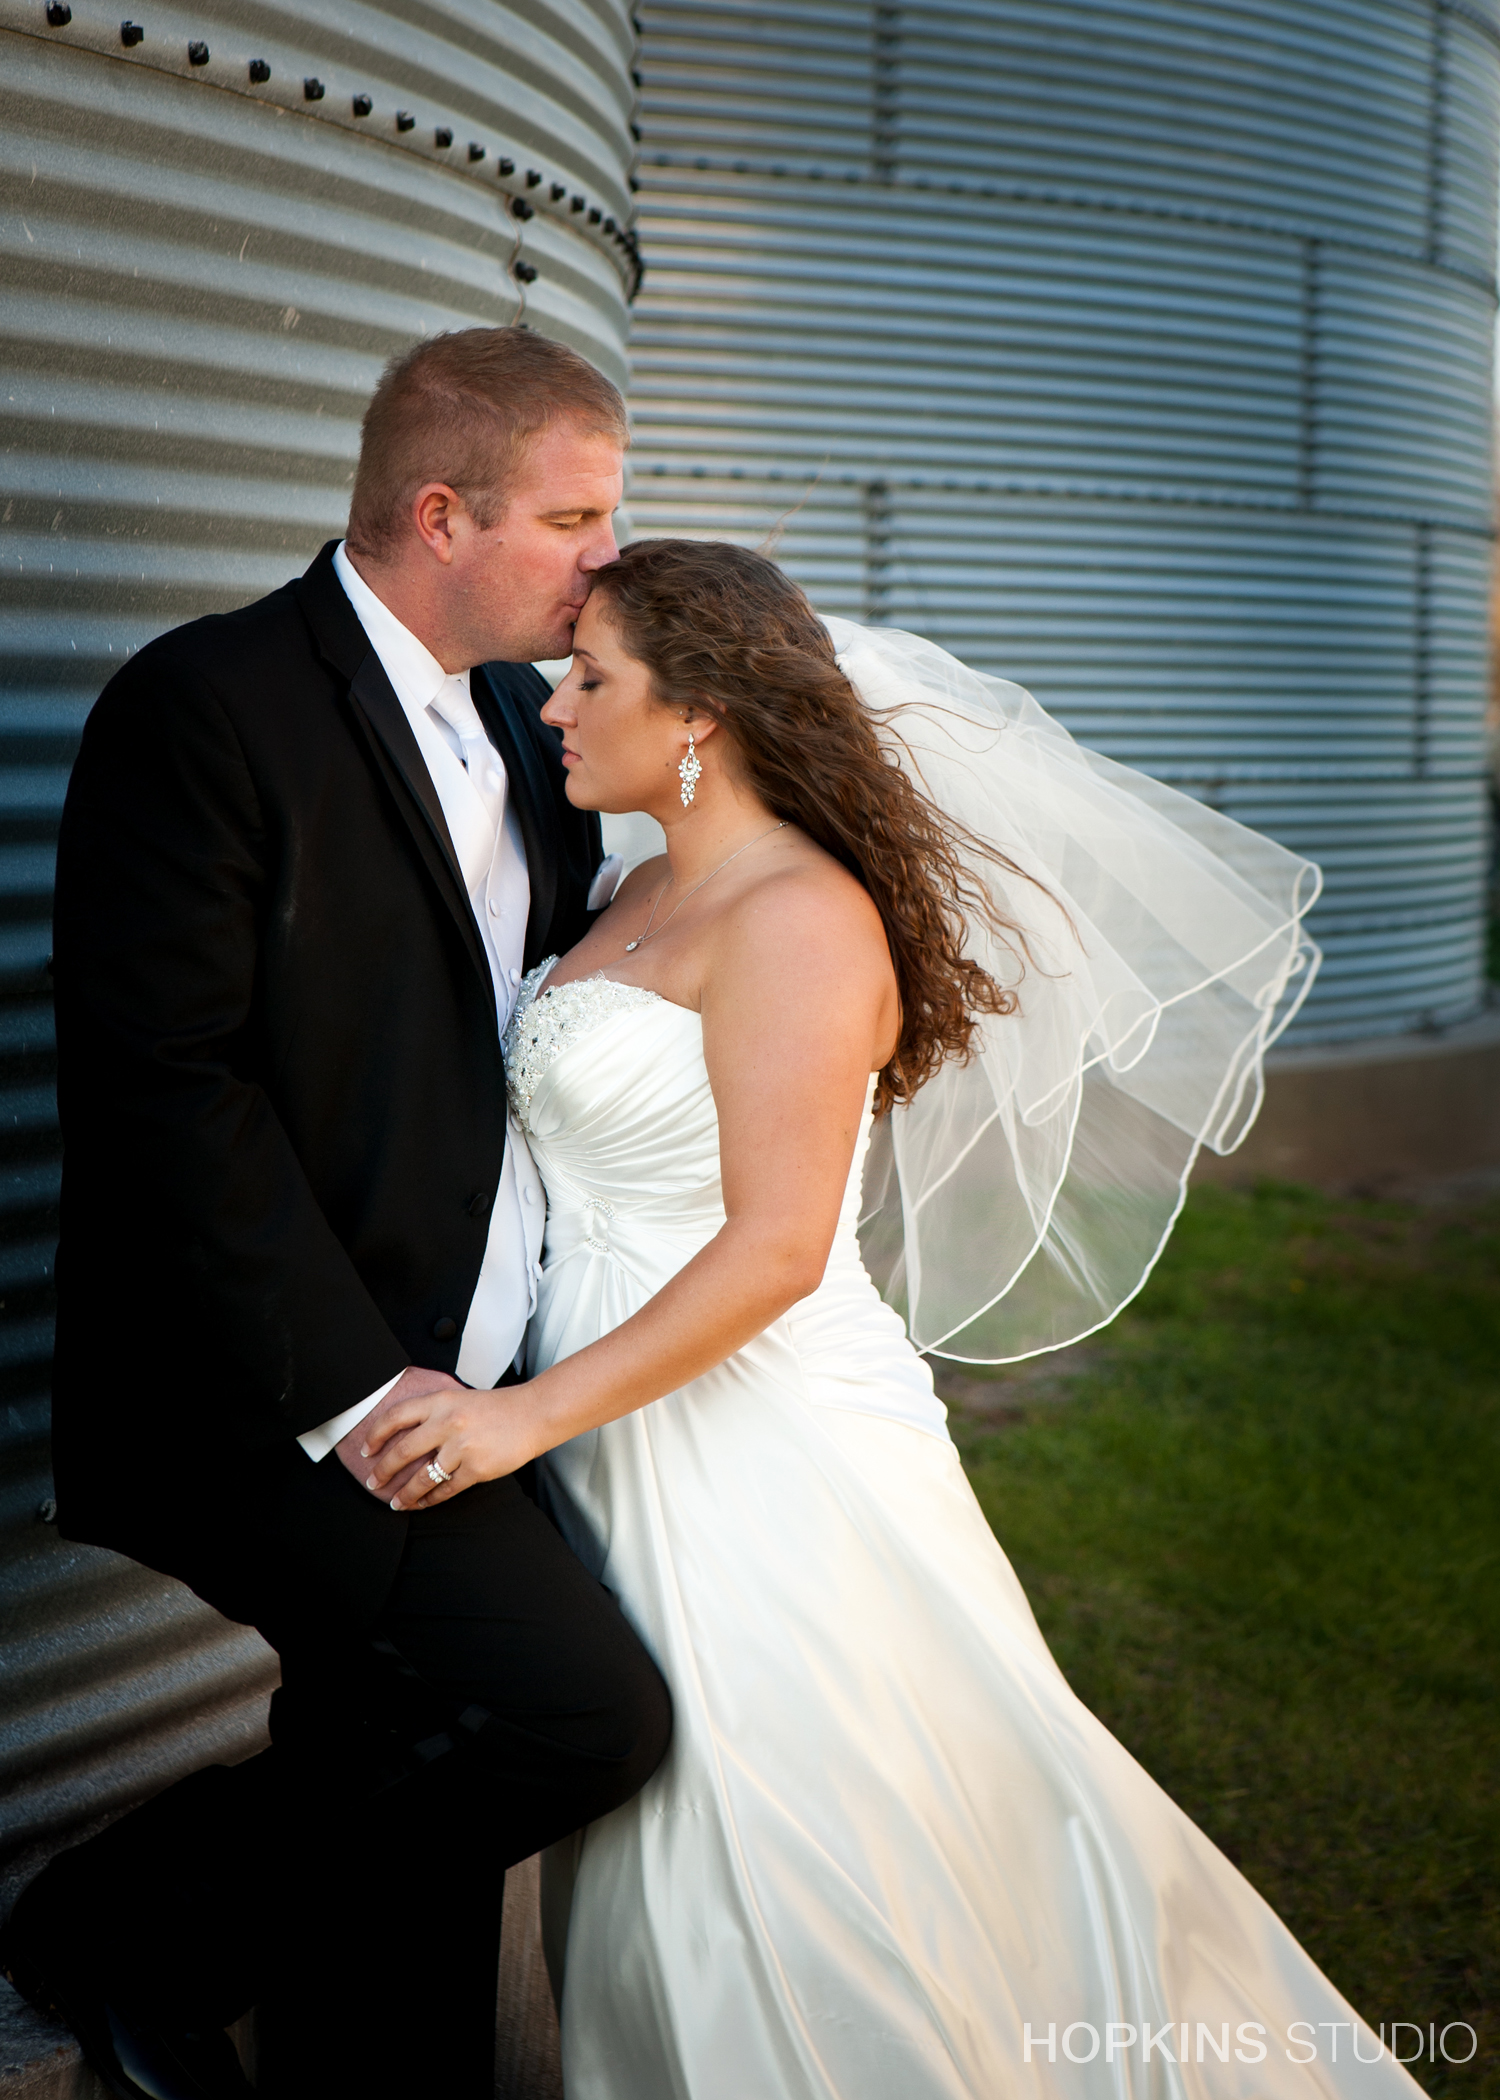 Wedding-Photography-Vineland-Center-Southwest-Michigan_32.jpg